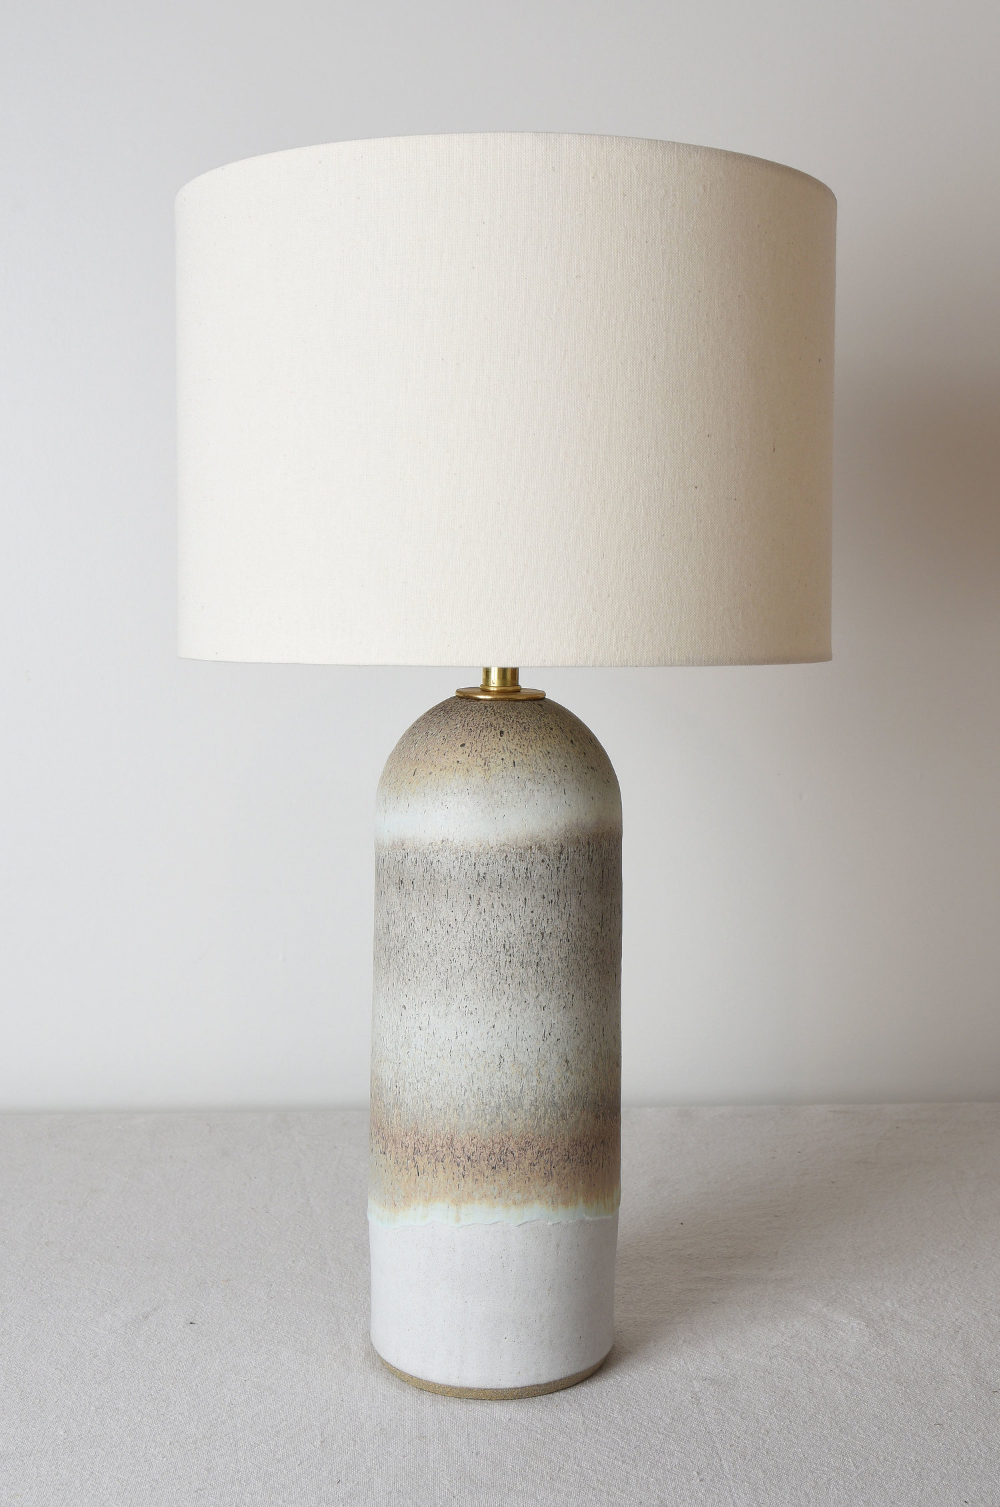 Tall Landscape Lamp Mmhp Ceramics Room Lamp Modern Lamp Table Lamps Living Room #tall #living #room #table #lamps